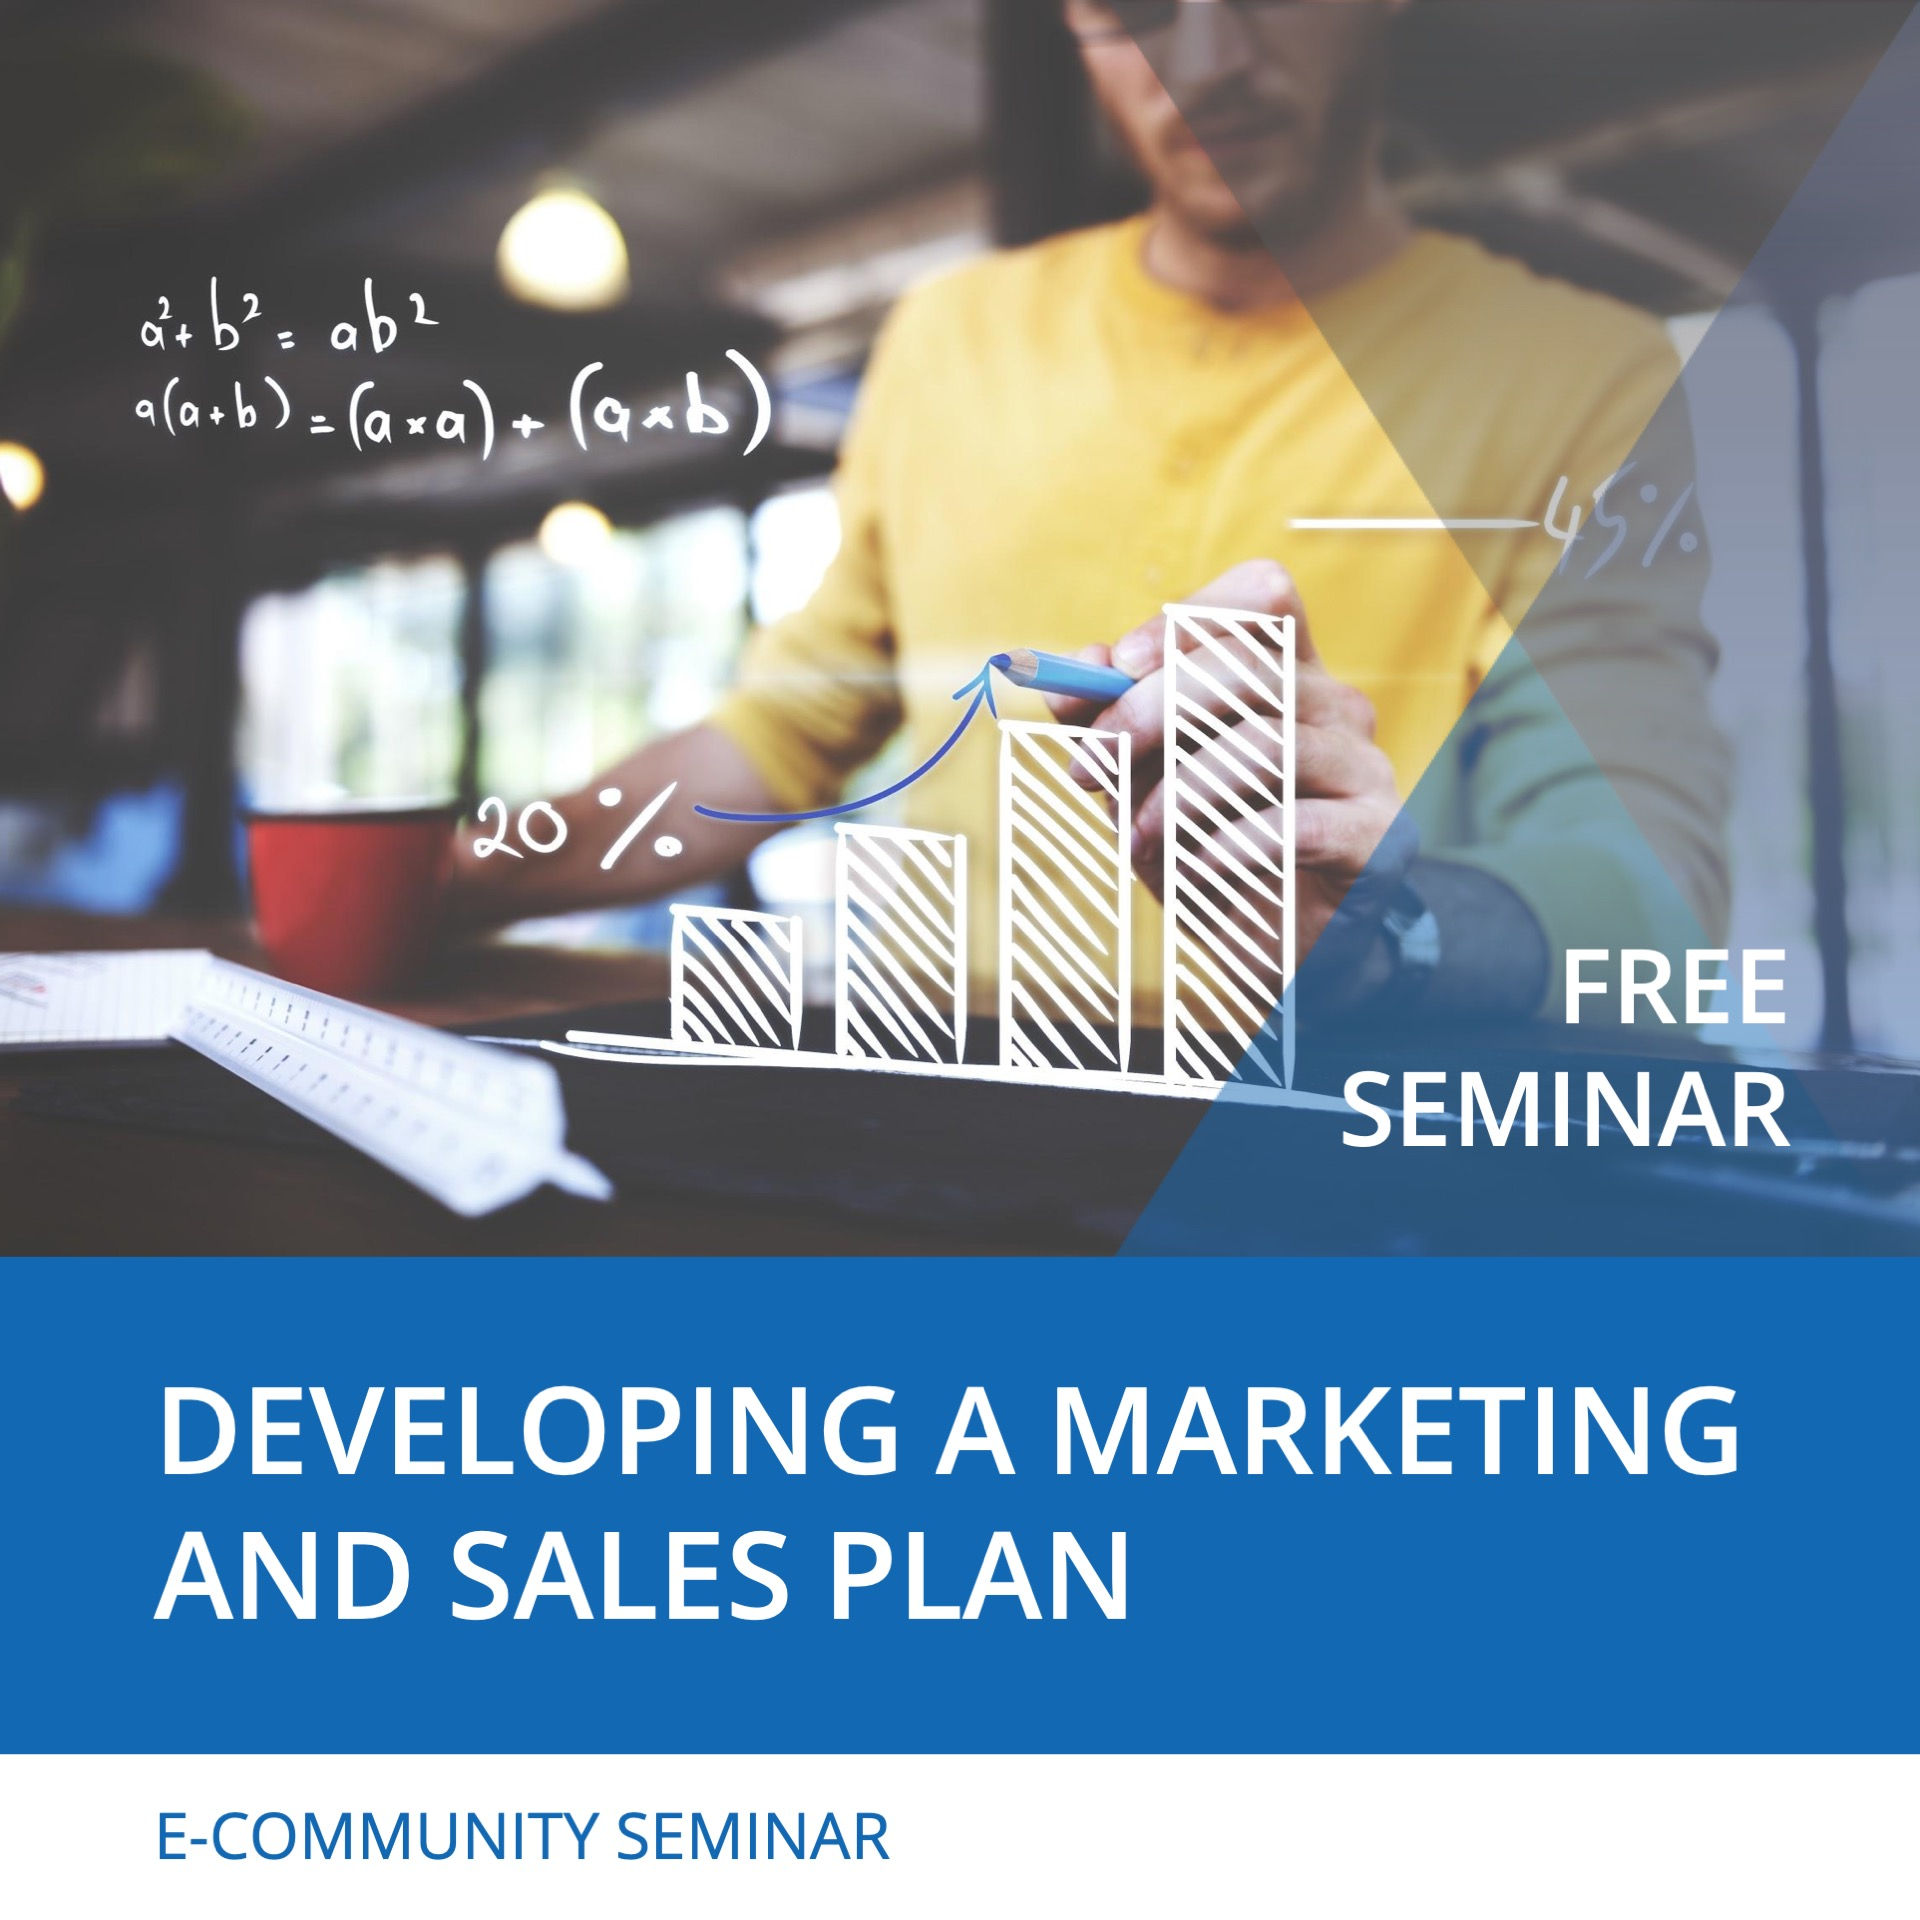 Seminar Developing a Marketing and Sales Plan - Nehemiah E-Community